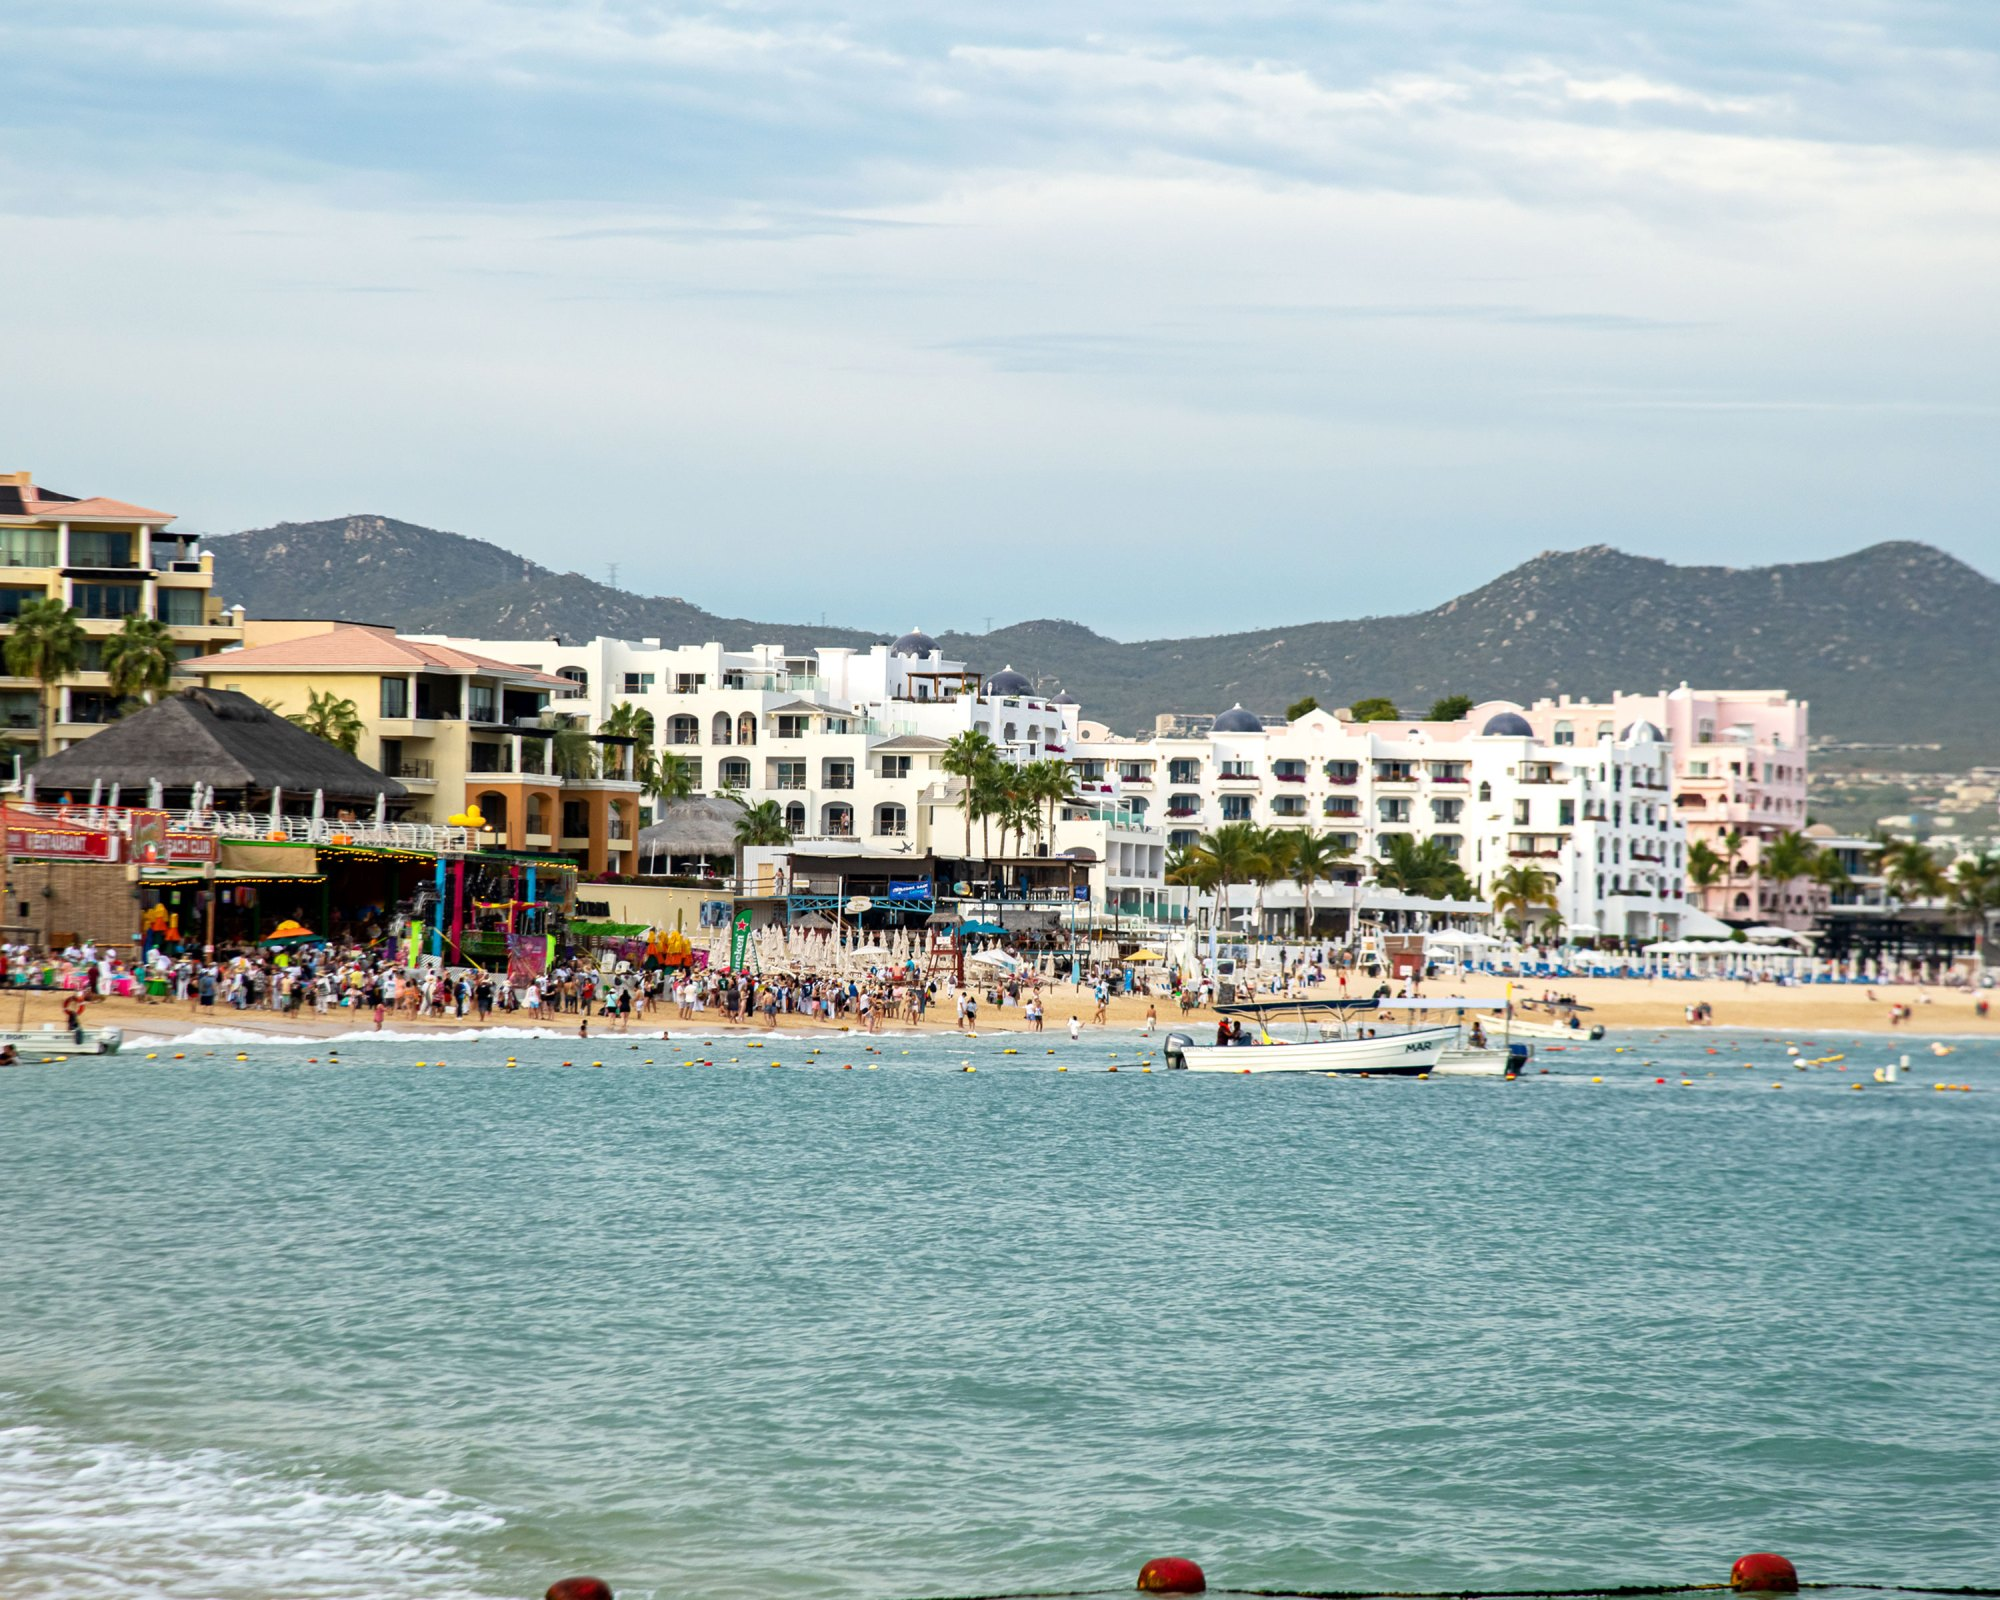 People walk on the beach in Cabo San Lucas, Mexico, on March 23, 2020. (Shutterstock)